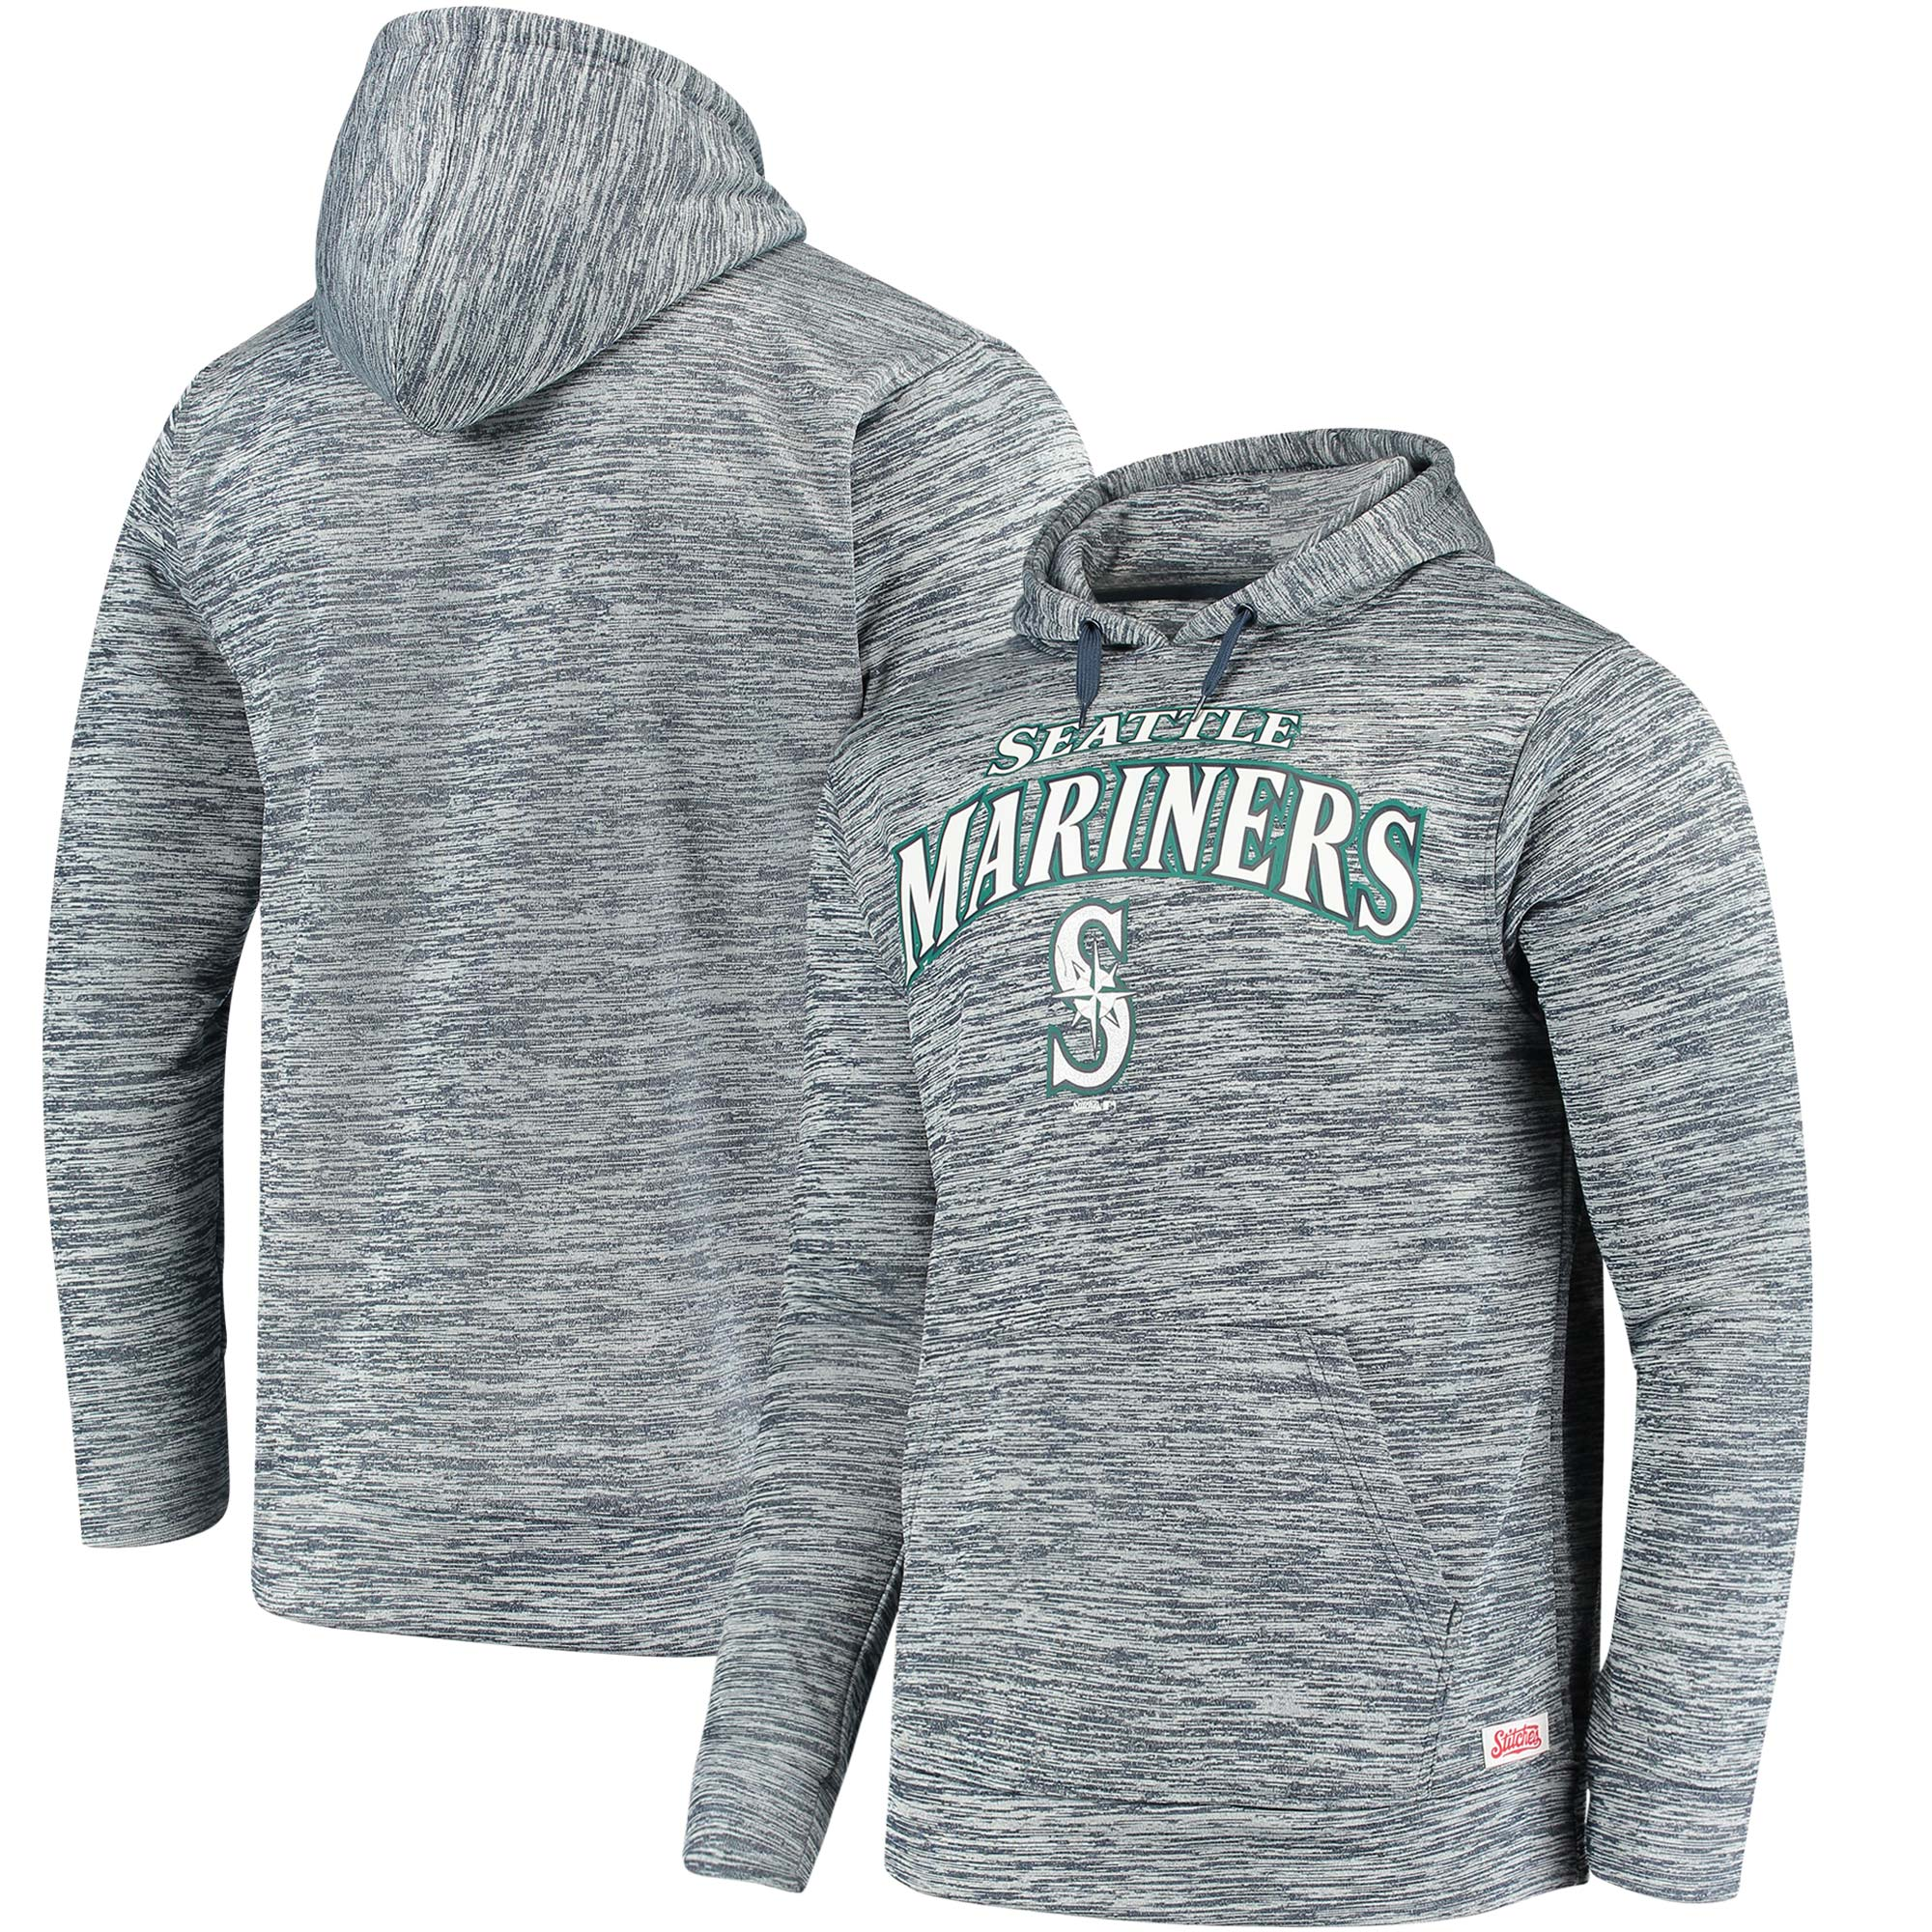 Seattle Mariners Stitches Digital Fleece Pullover Hoodie - Heathered Navy